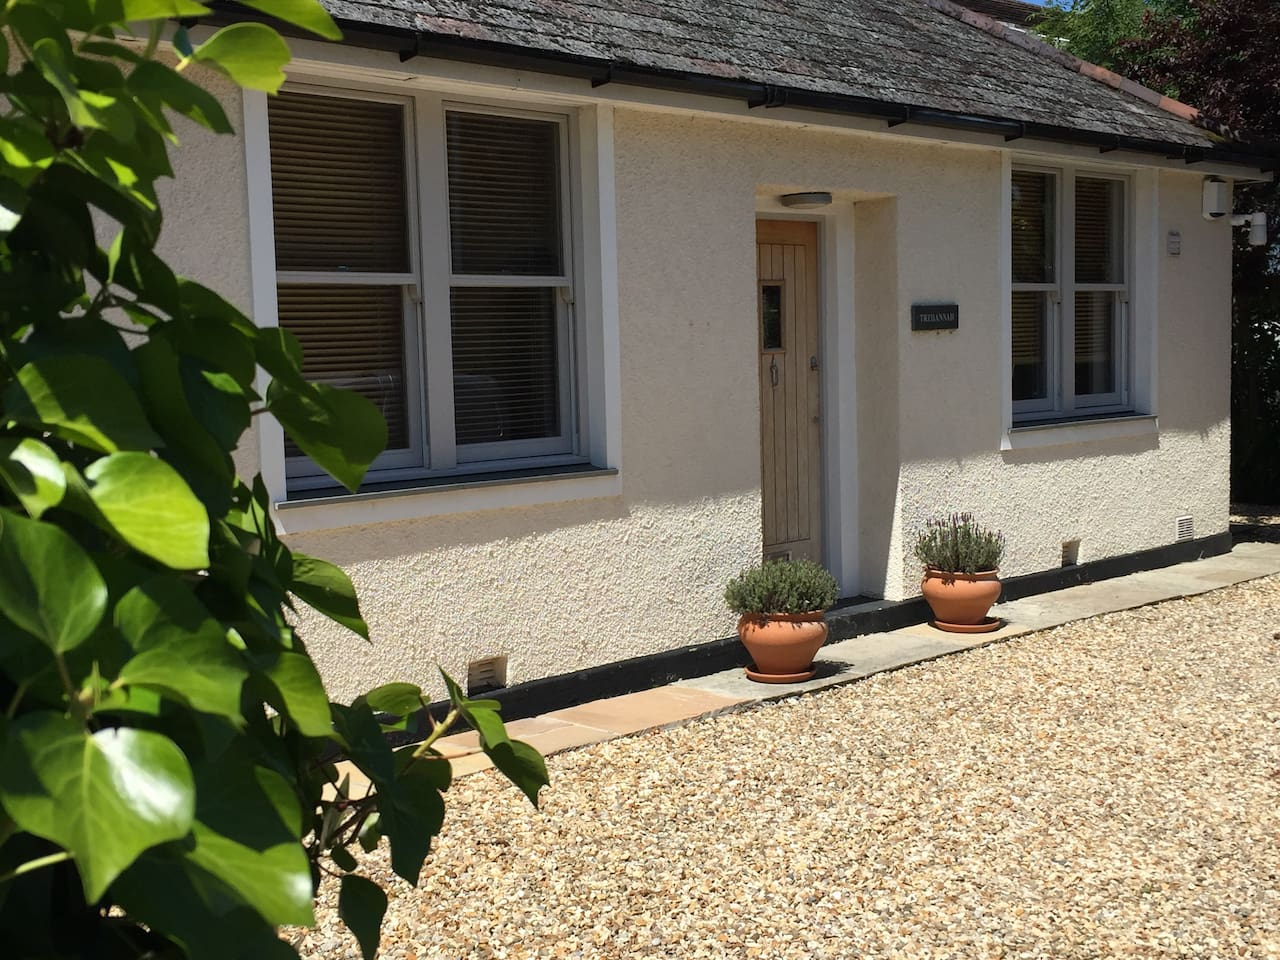 Beautiful cottage with parking space on forecourt